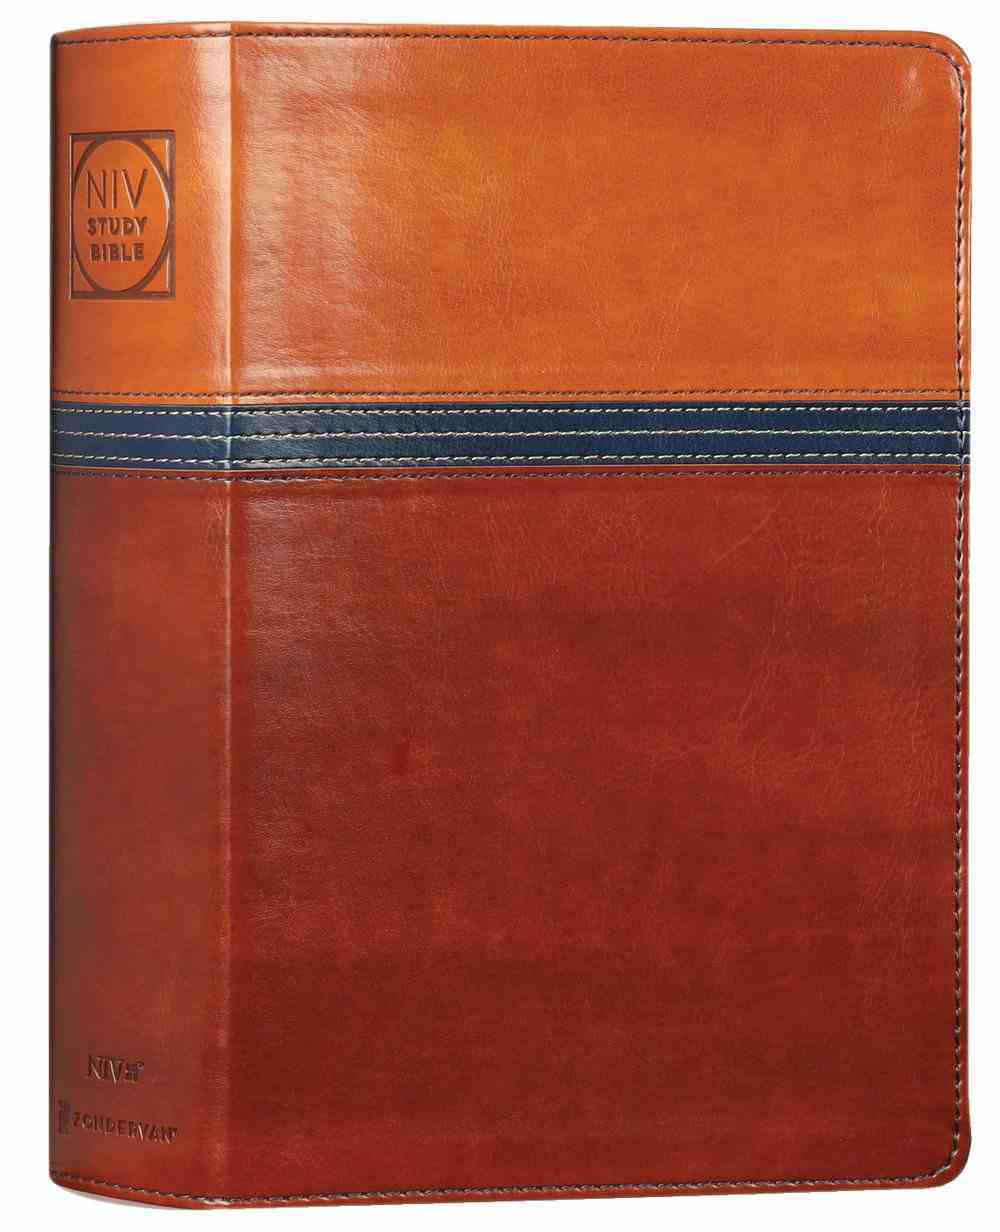 NIV Study Bible Personal Size Brown/Blue (Red Letter Edition) Fully Revised Edition (2020) Premium Imitation Leather